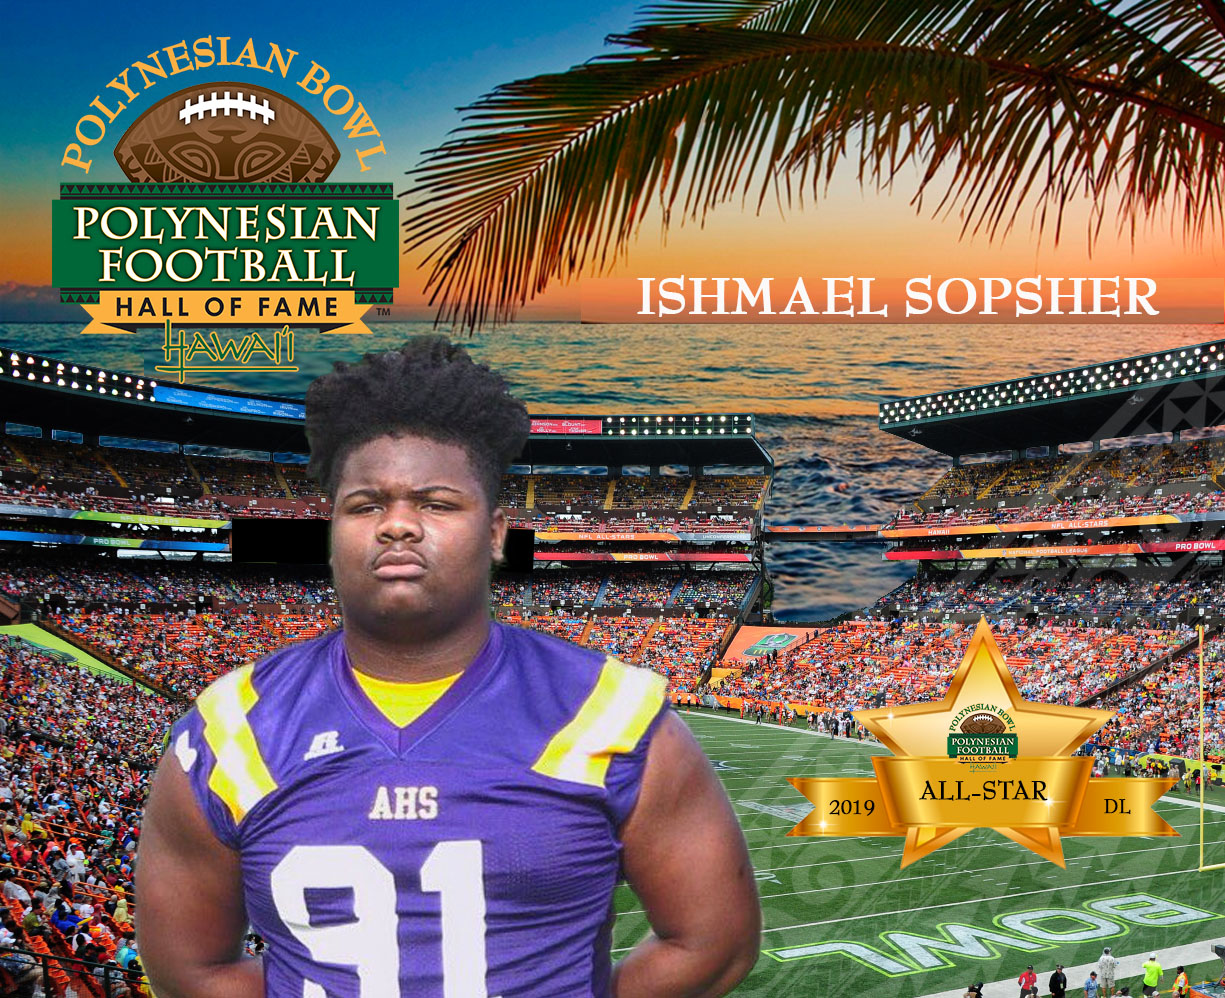 Five-star defensive lineman Ishmael Sopsher is among the first 24 commitments to the 2019 Polynesian Bowl. Background Photo: Scott Cunningham/Getty Images